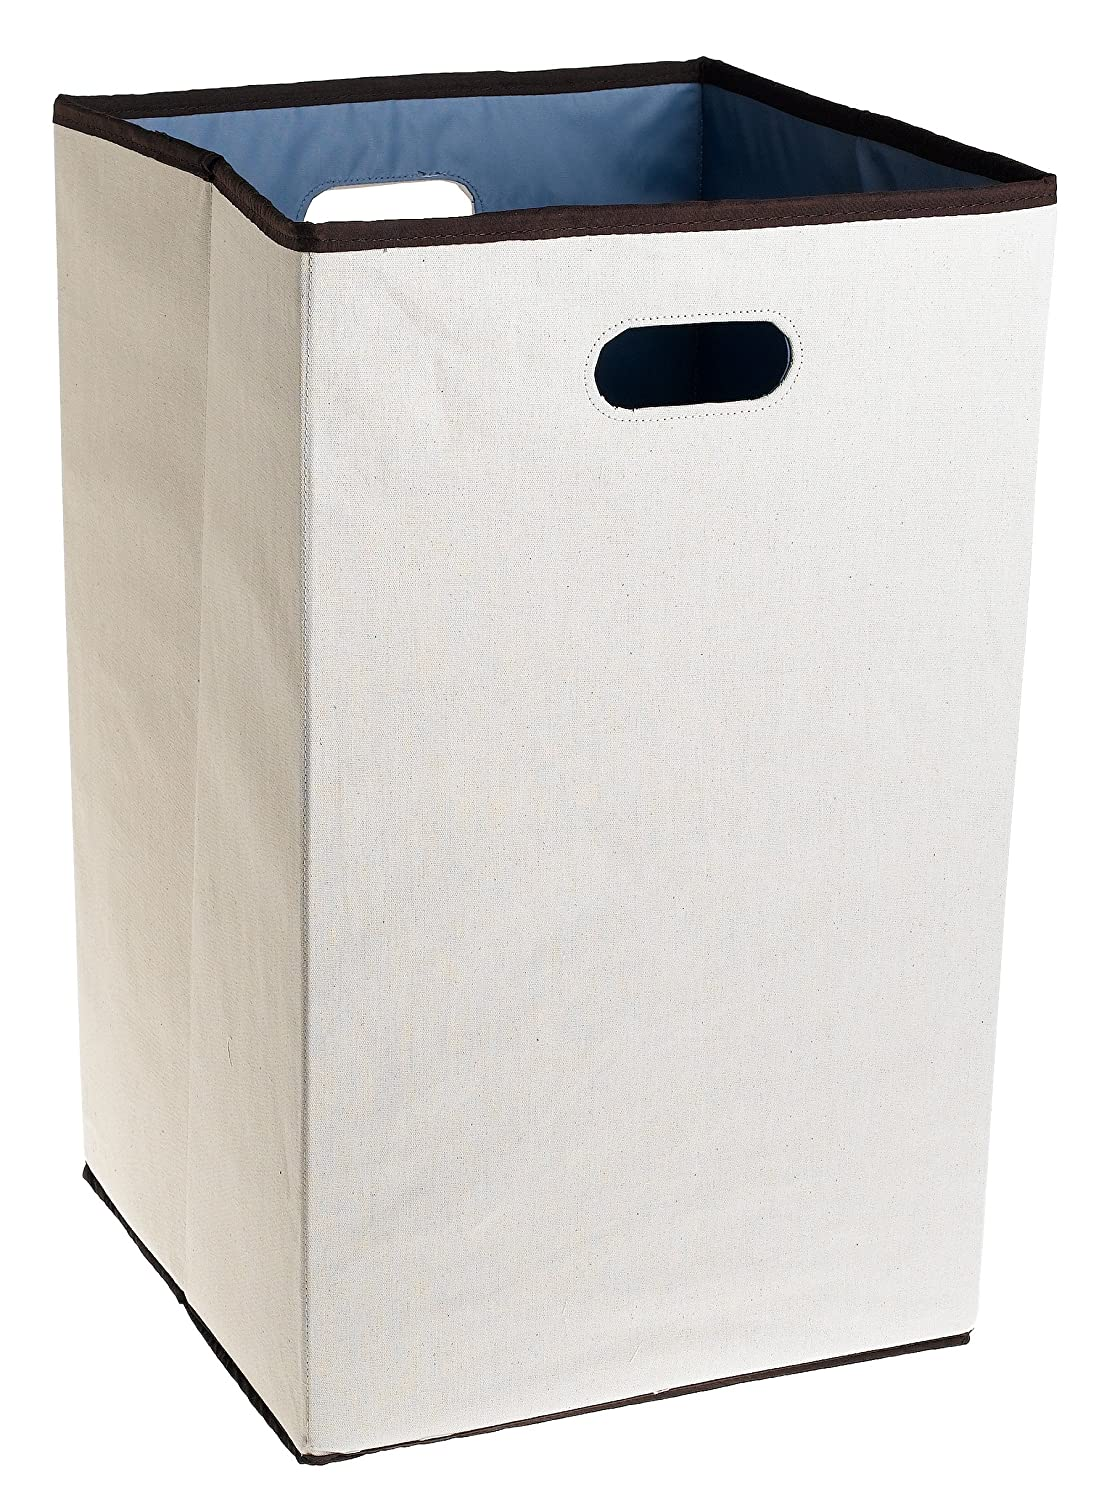 Rubbermaid 4D06 Configurations 23-Inch Foldable Laundry Hamper, Natural $10.00